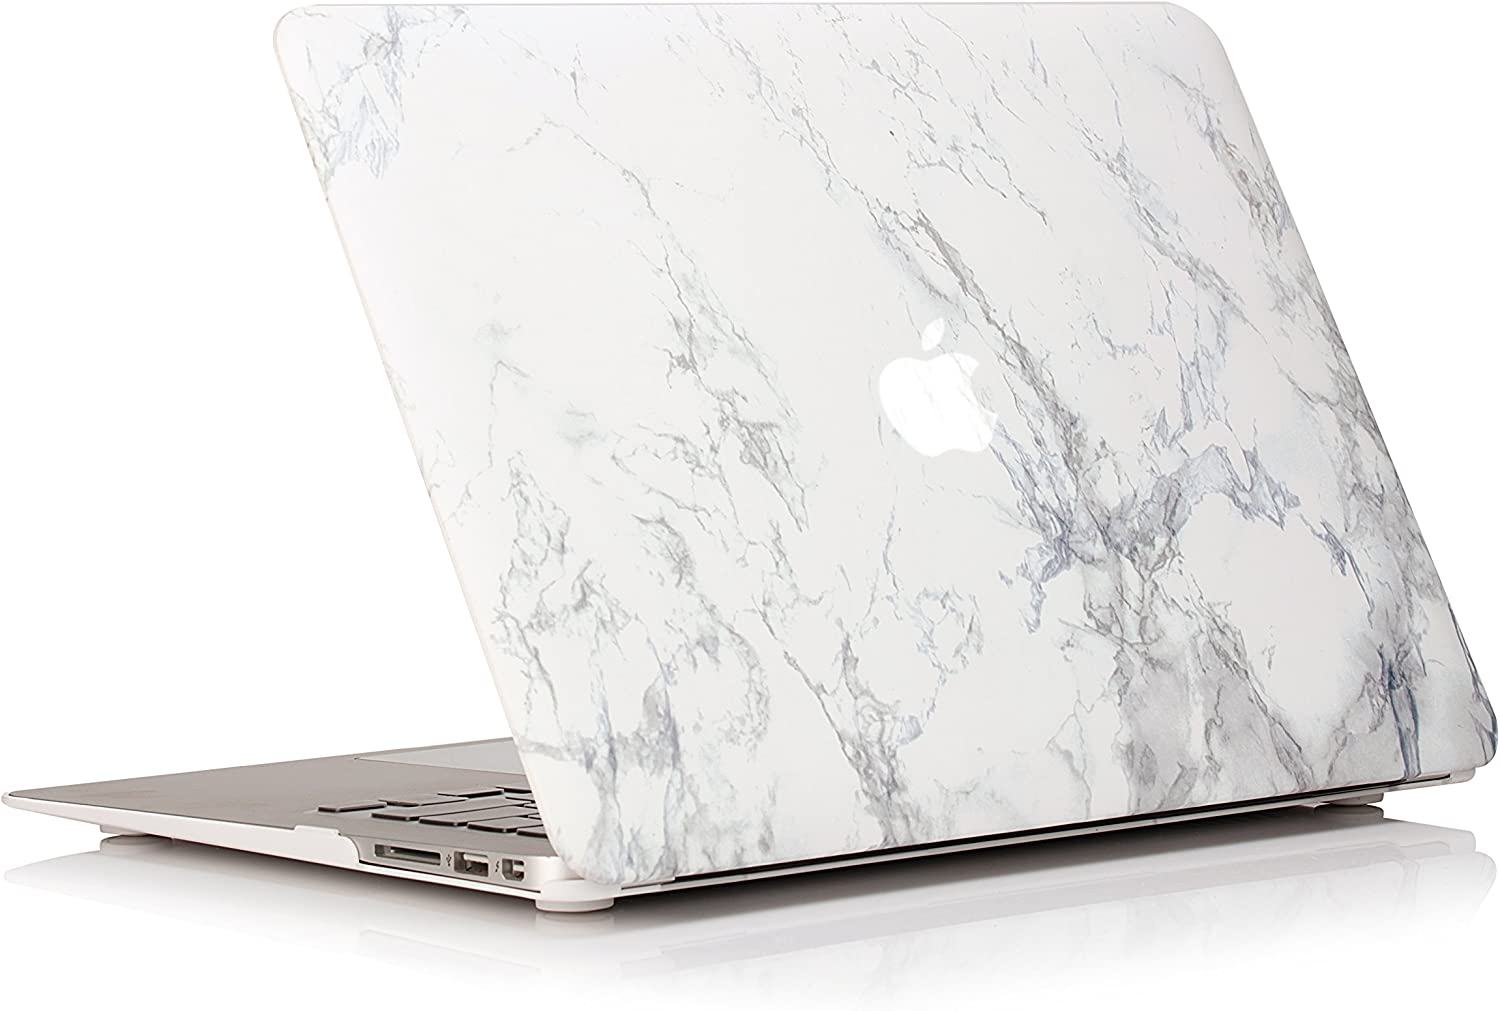 Ruban MacBook Air 13 Inch Case - Fits Previous Generations A1466 / A1369 (Will Not Fit 2018 MacBook Air 13 with Touch ID), Slim Snap On Hard Shell Protective Cover,White Marble